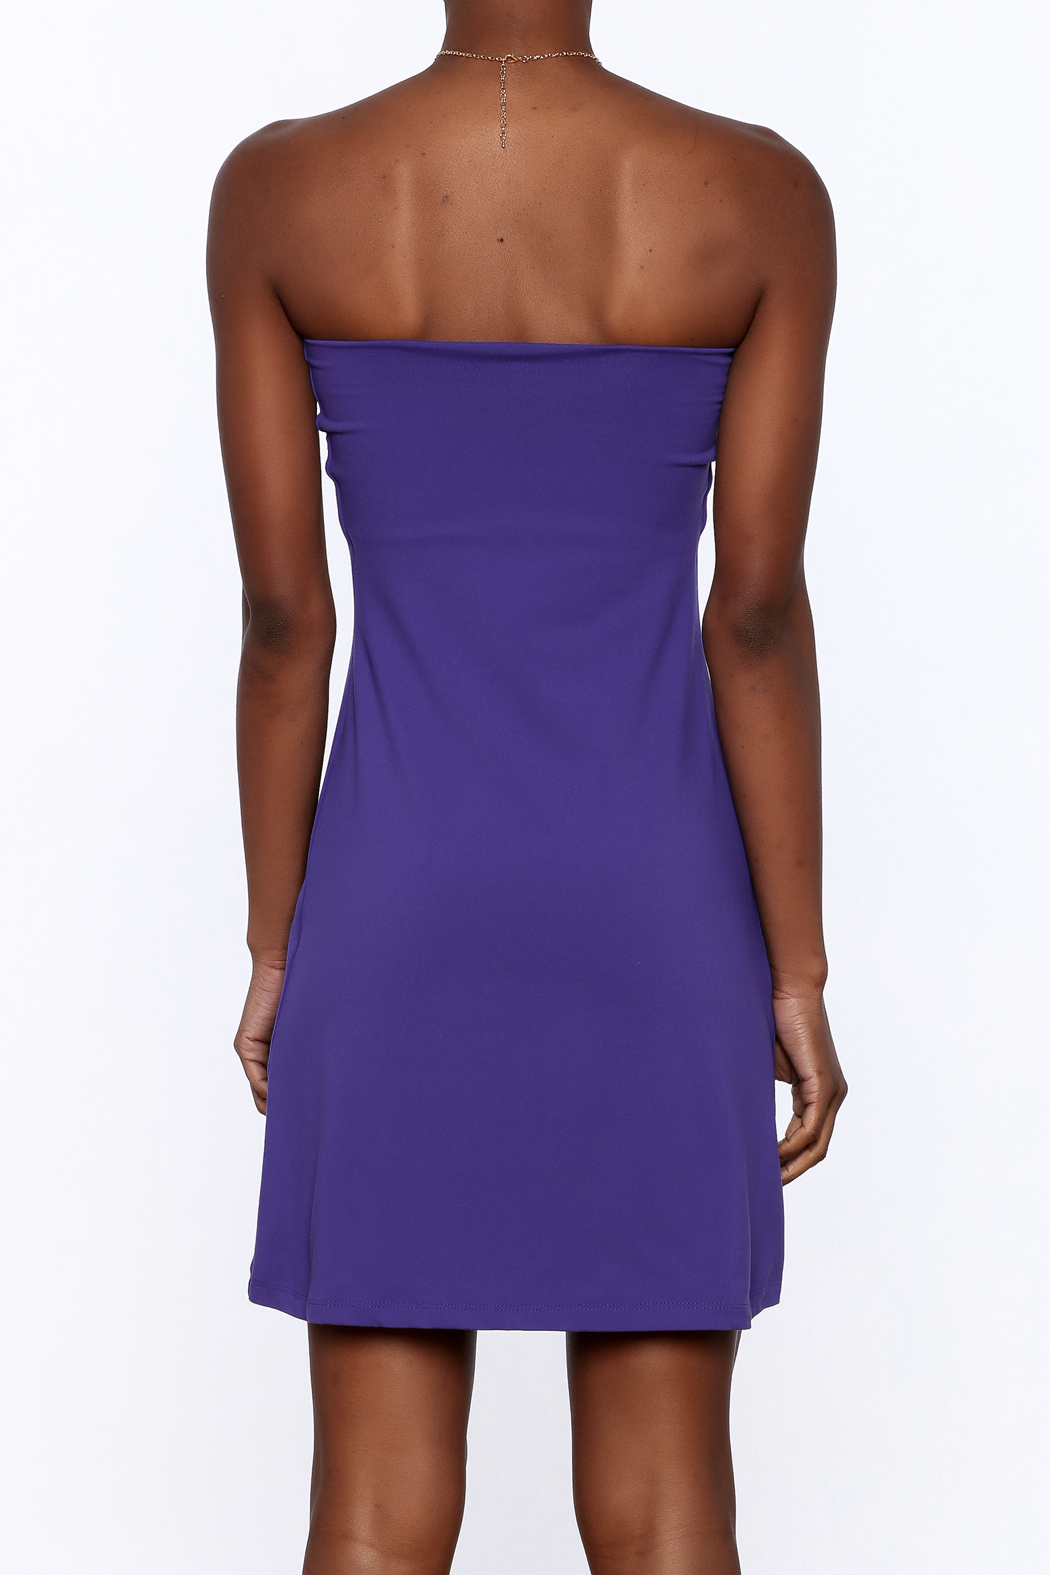 Susana Monaco Purple Strapless Dress - Back Cropped Image